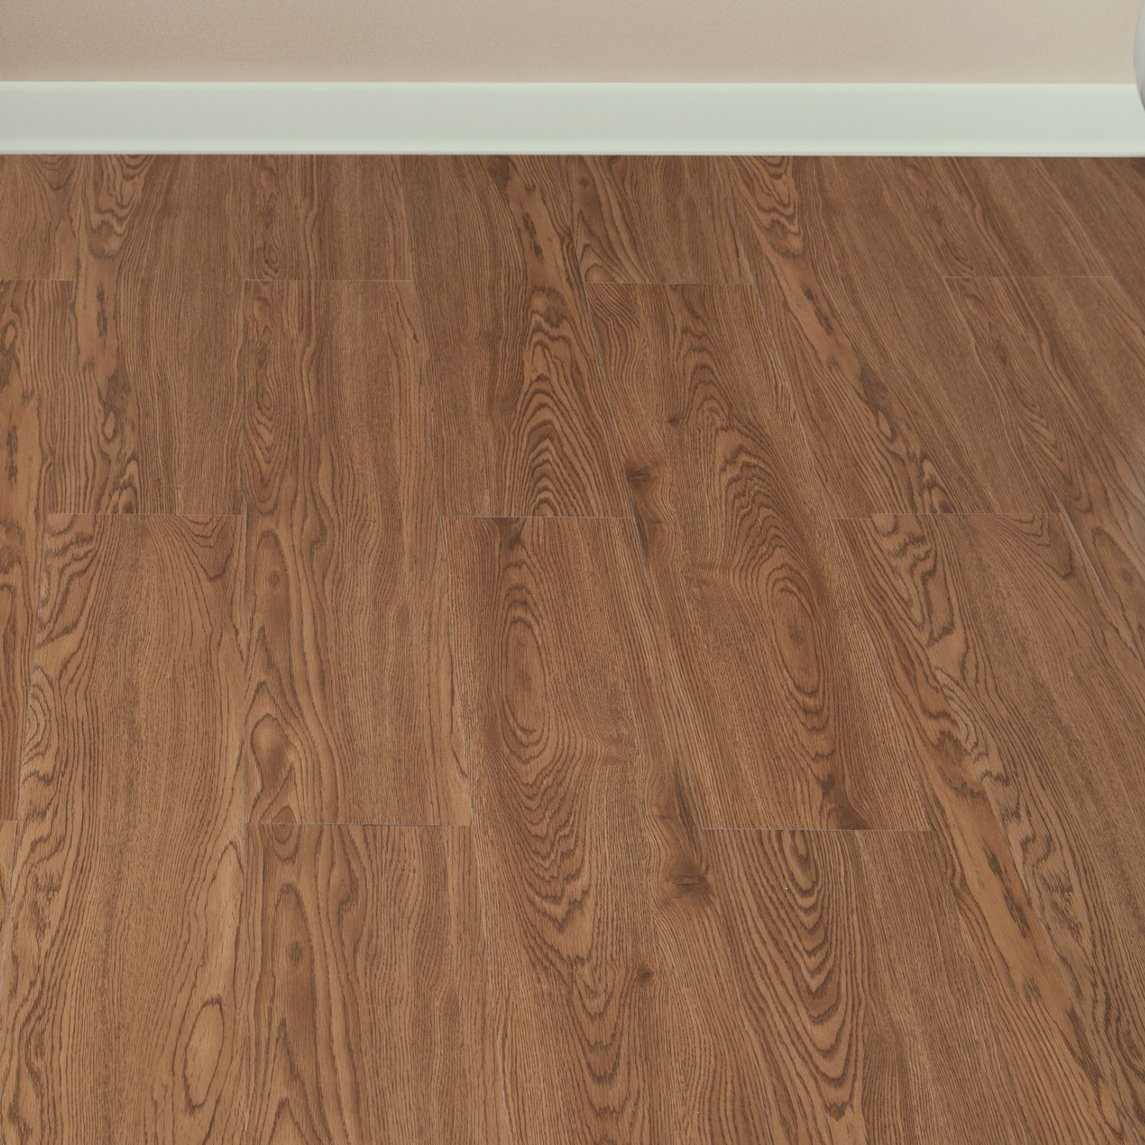 Self Adhesive Vinyl Planks Hardwood Wood Peel N Stick Floor Tiles 10 Pieces Ebay